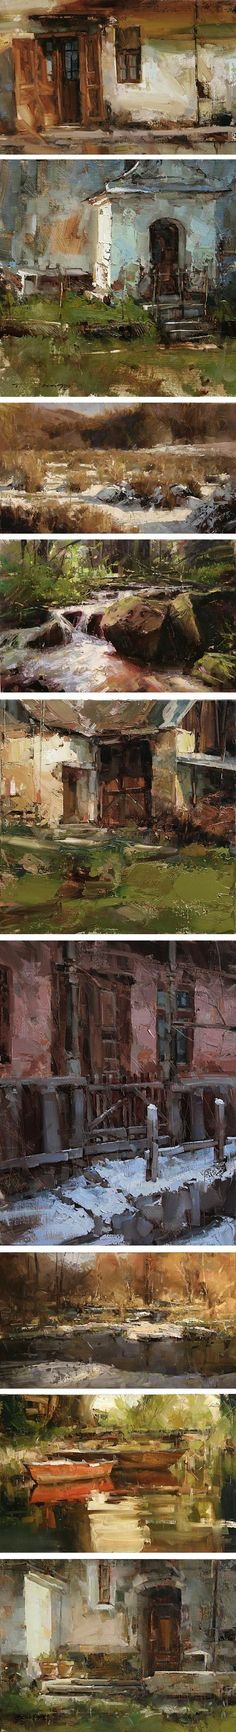 lines and colors :: a blog about drawing, painting, illustration, comics, concept art and other visual arts » Tibor Nagy I love his work! I'm lucky enough to own one if his paintings:)